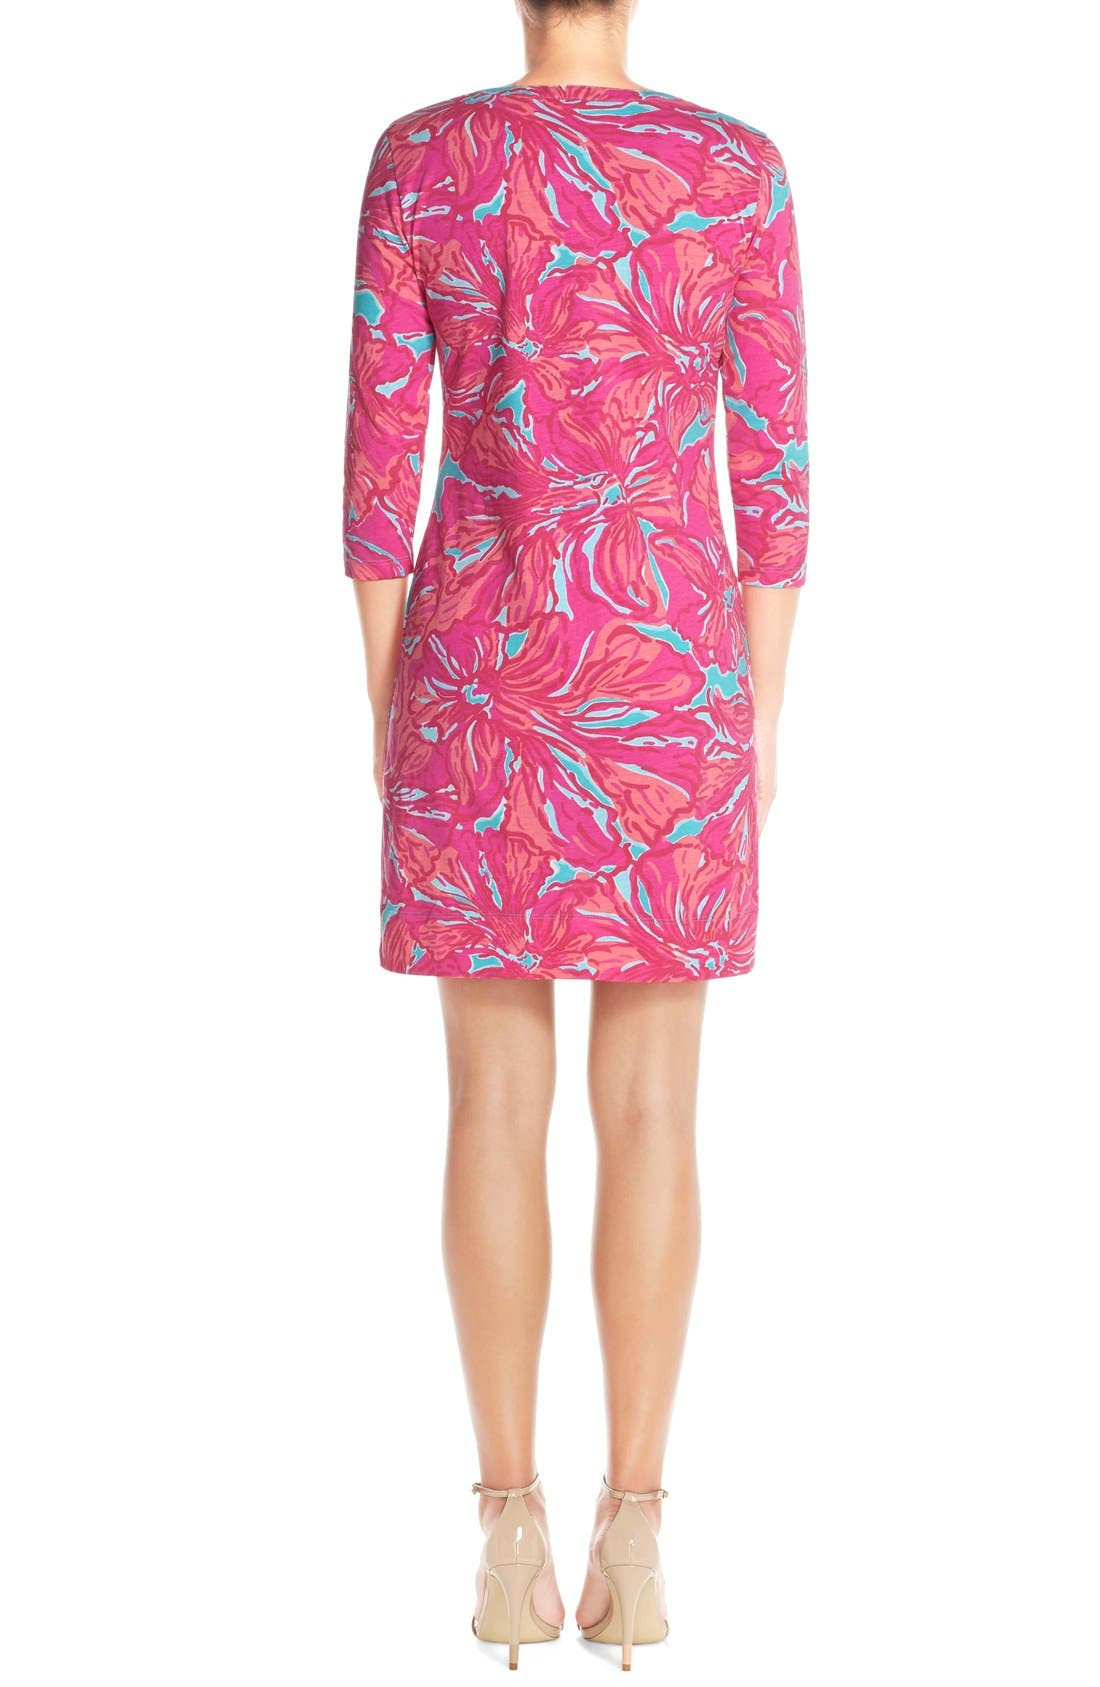 Alternate Image 2  - Lilly Pulitzer® 'Alessia' Print Pima Cotton T-Shirt Dress (Nordstrom Exclusive)